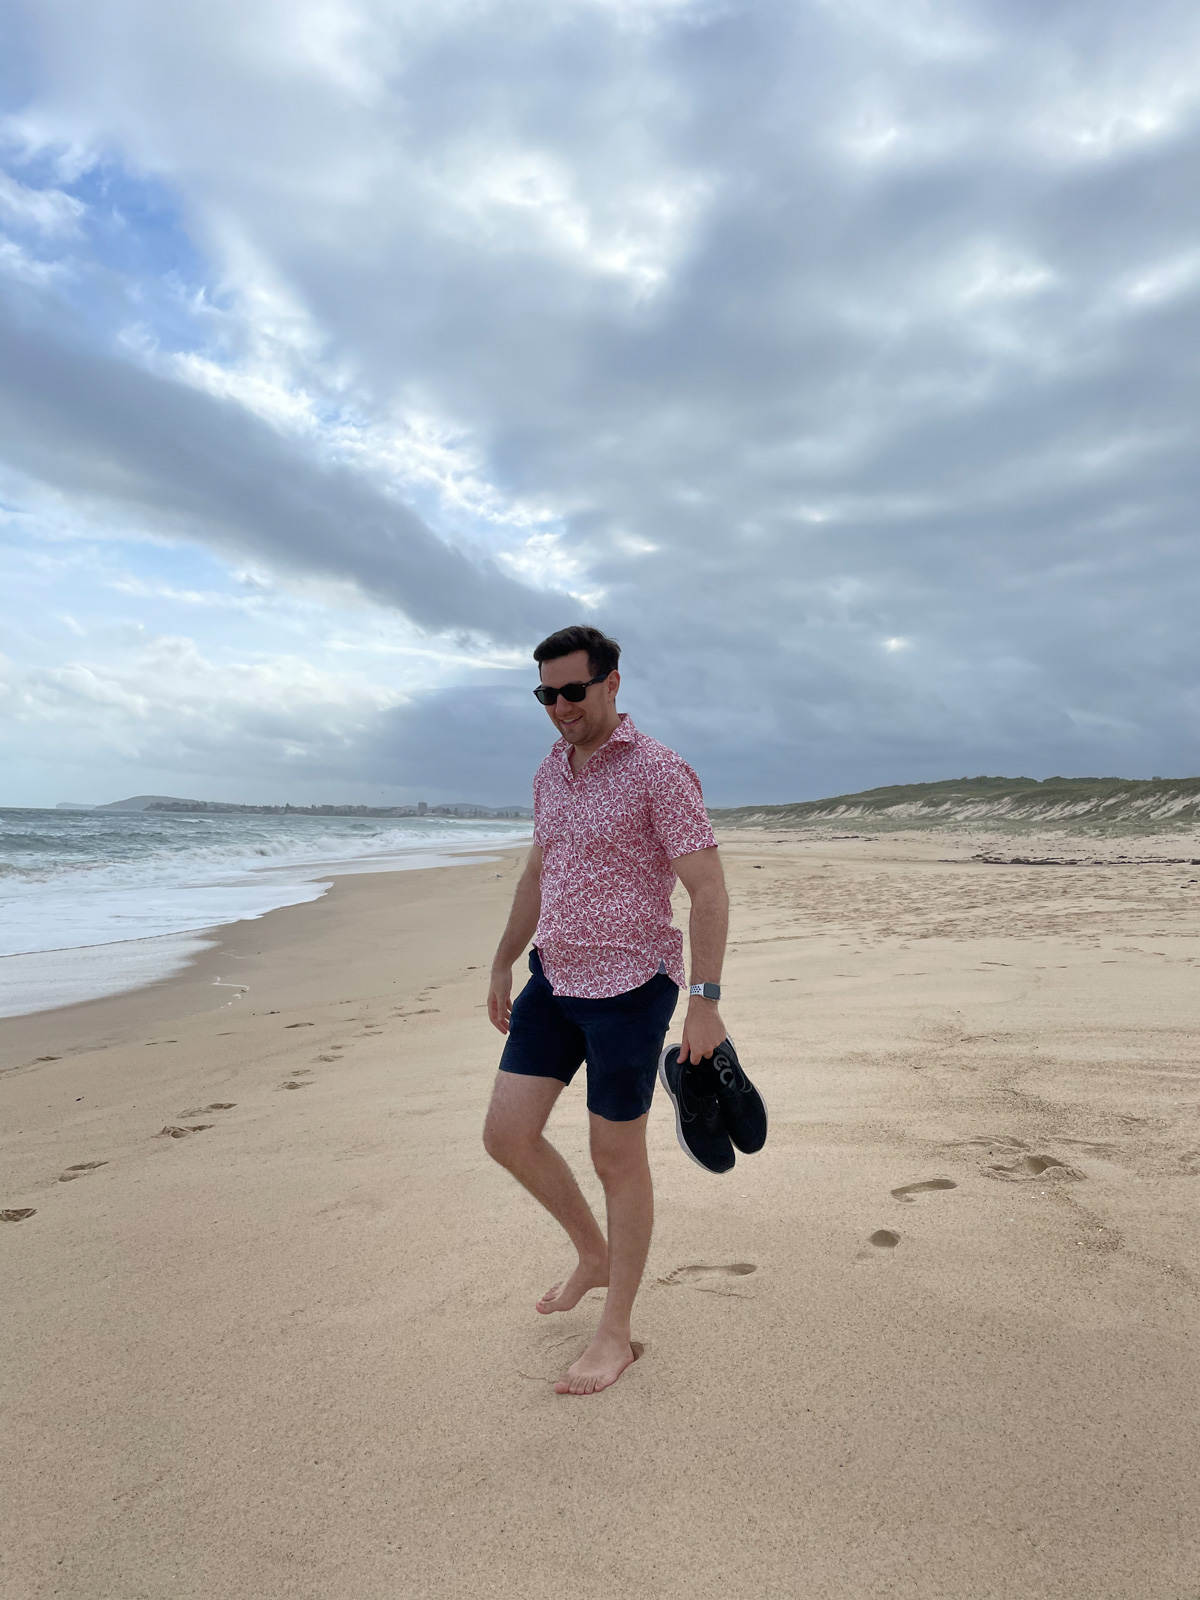 A man wearing dark sunglasses, in a red patterned shirt and dark blue shorts, standing barefoot on the sand of a beach. The sky is cloudy